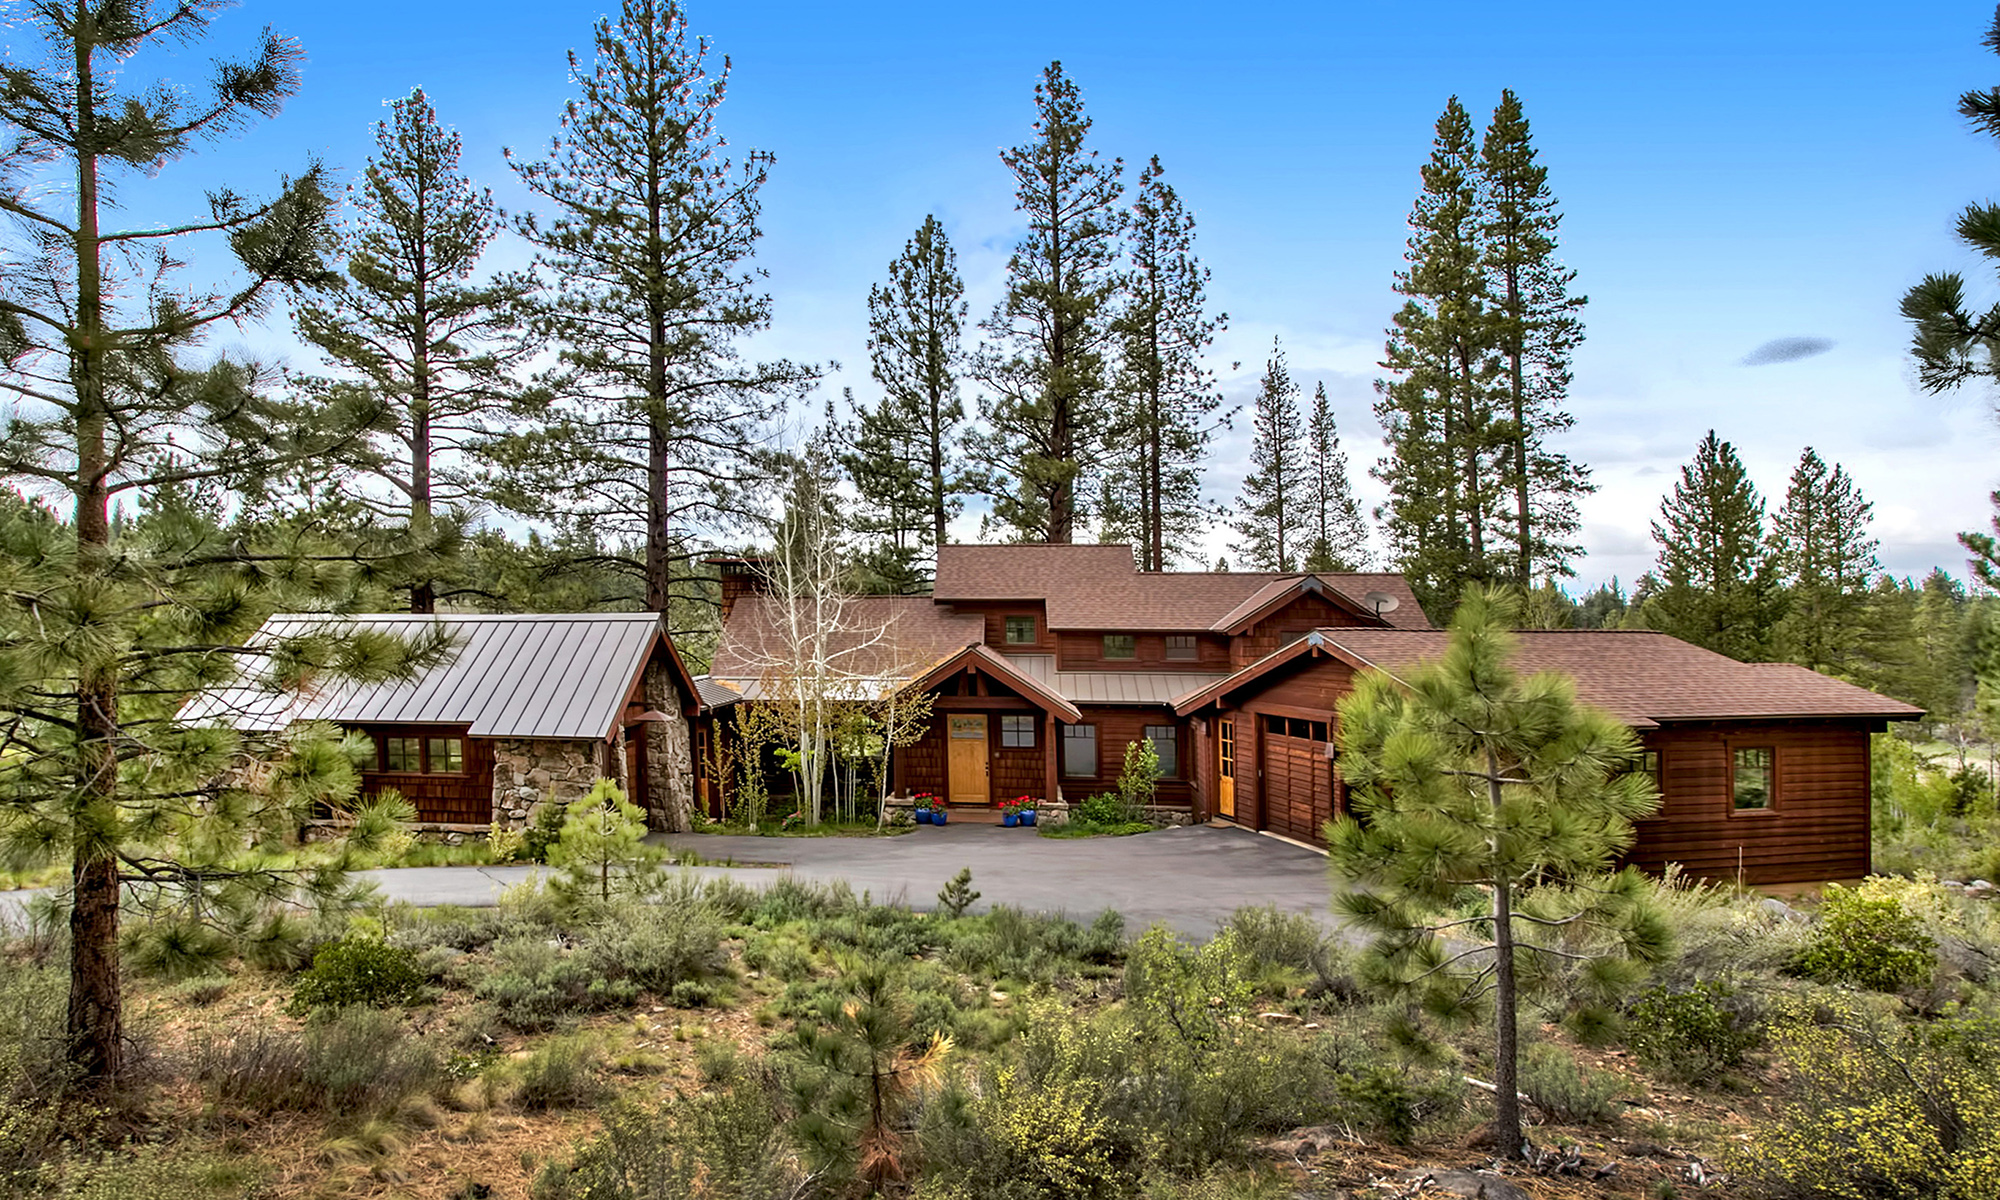 Single Family Home for Active at 13209 Snowshoe Thompson Circle Truckee, California 96161 United States